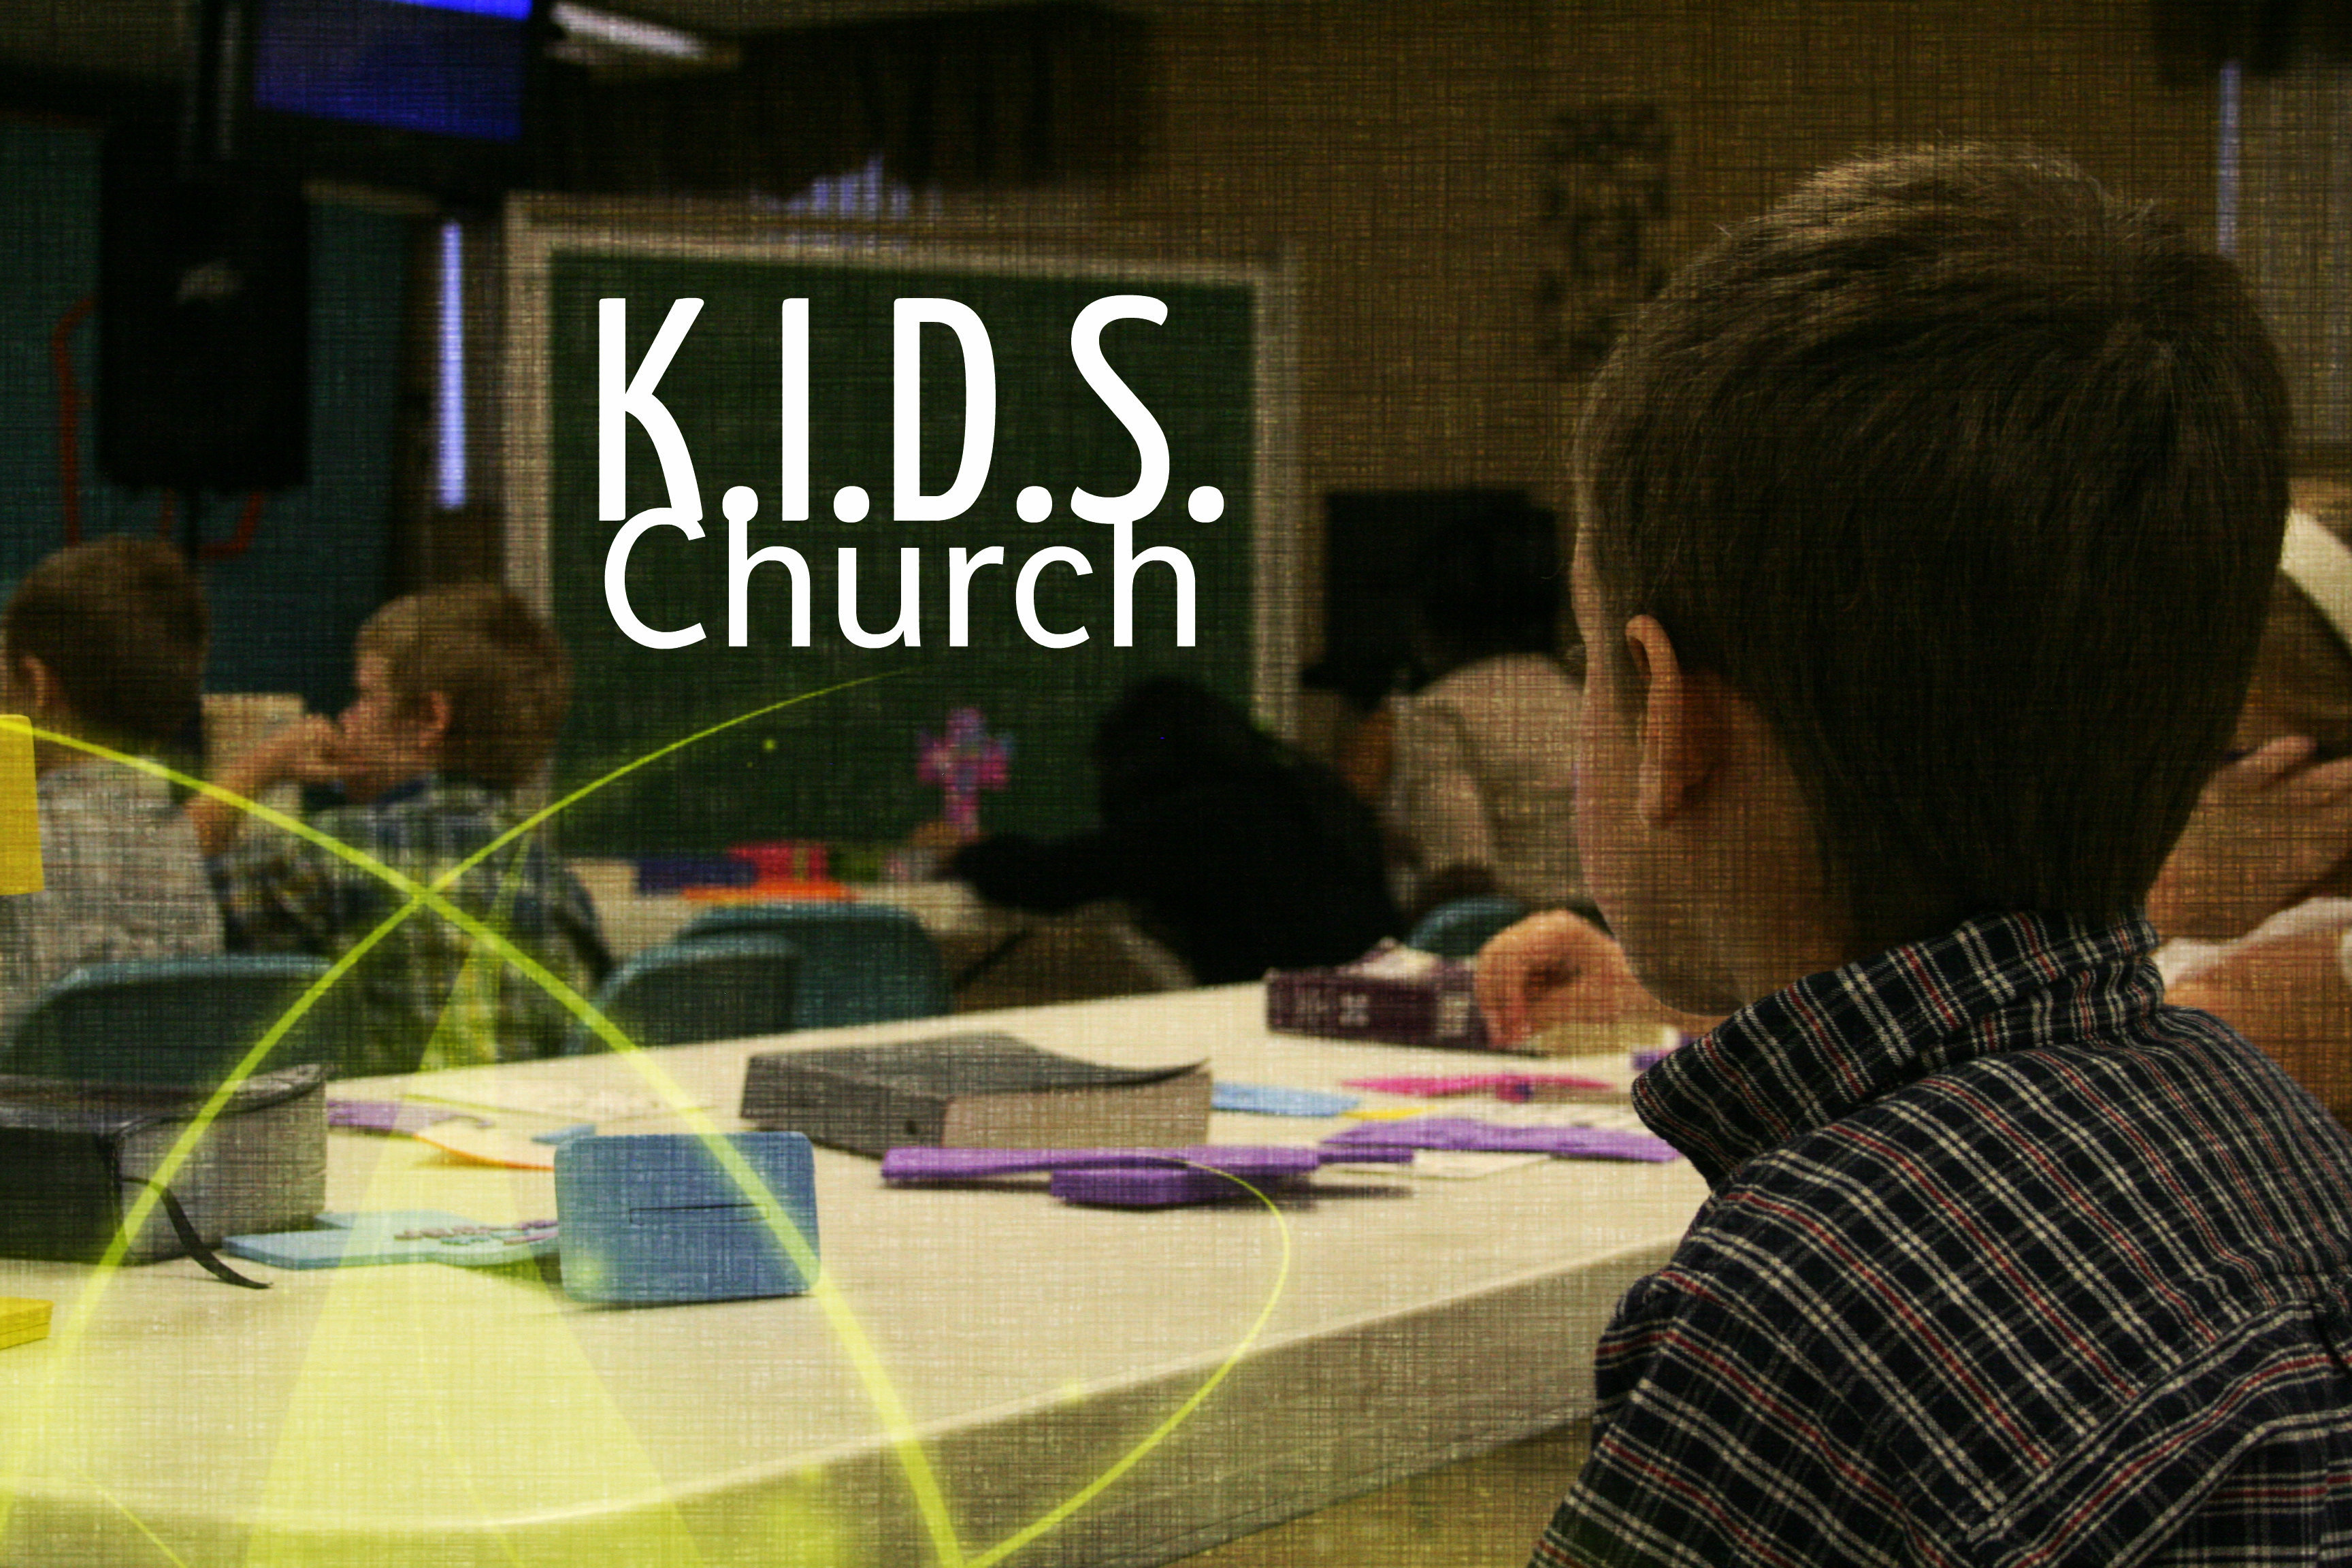 K.i.d.s. church pic